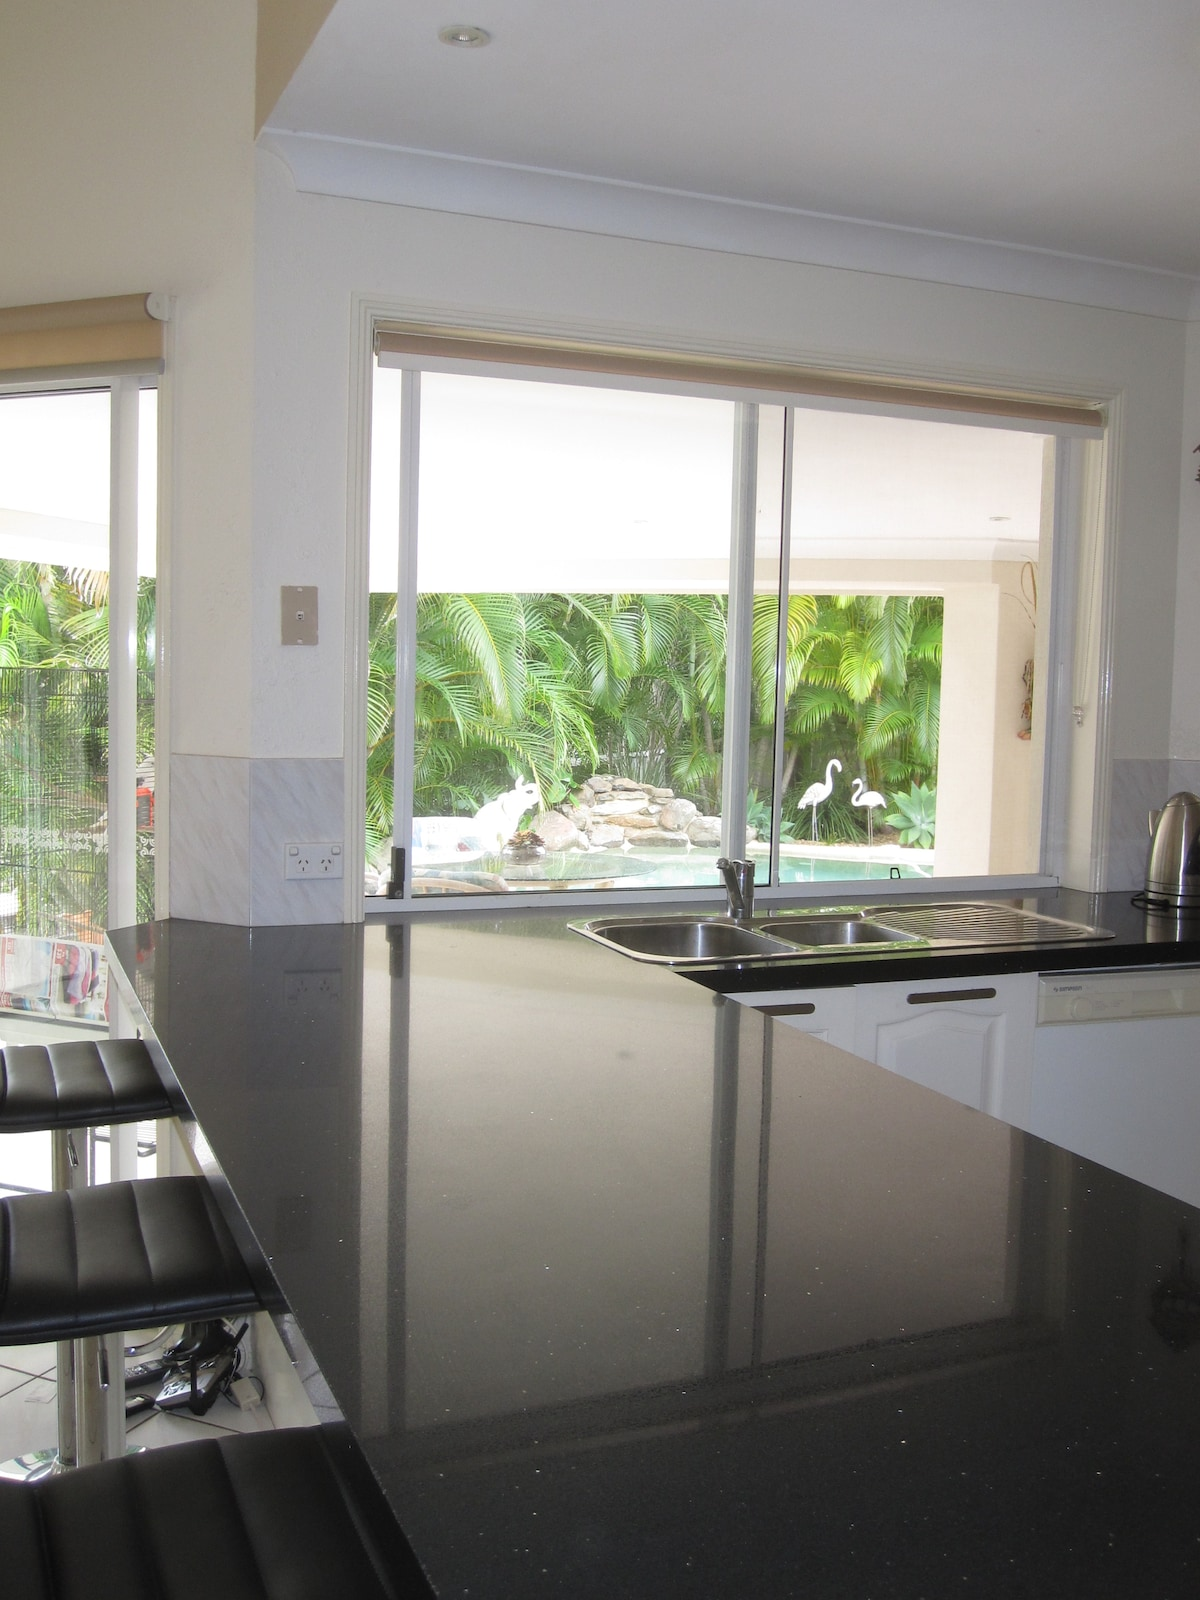 Prepare breakfast in the kitchen over looking the pool.